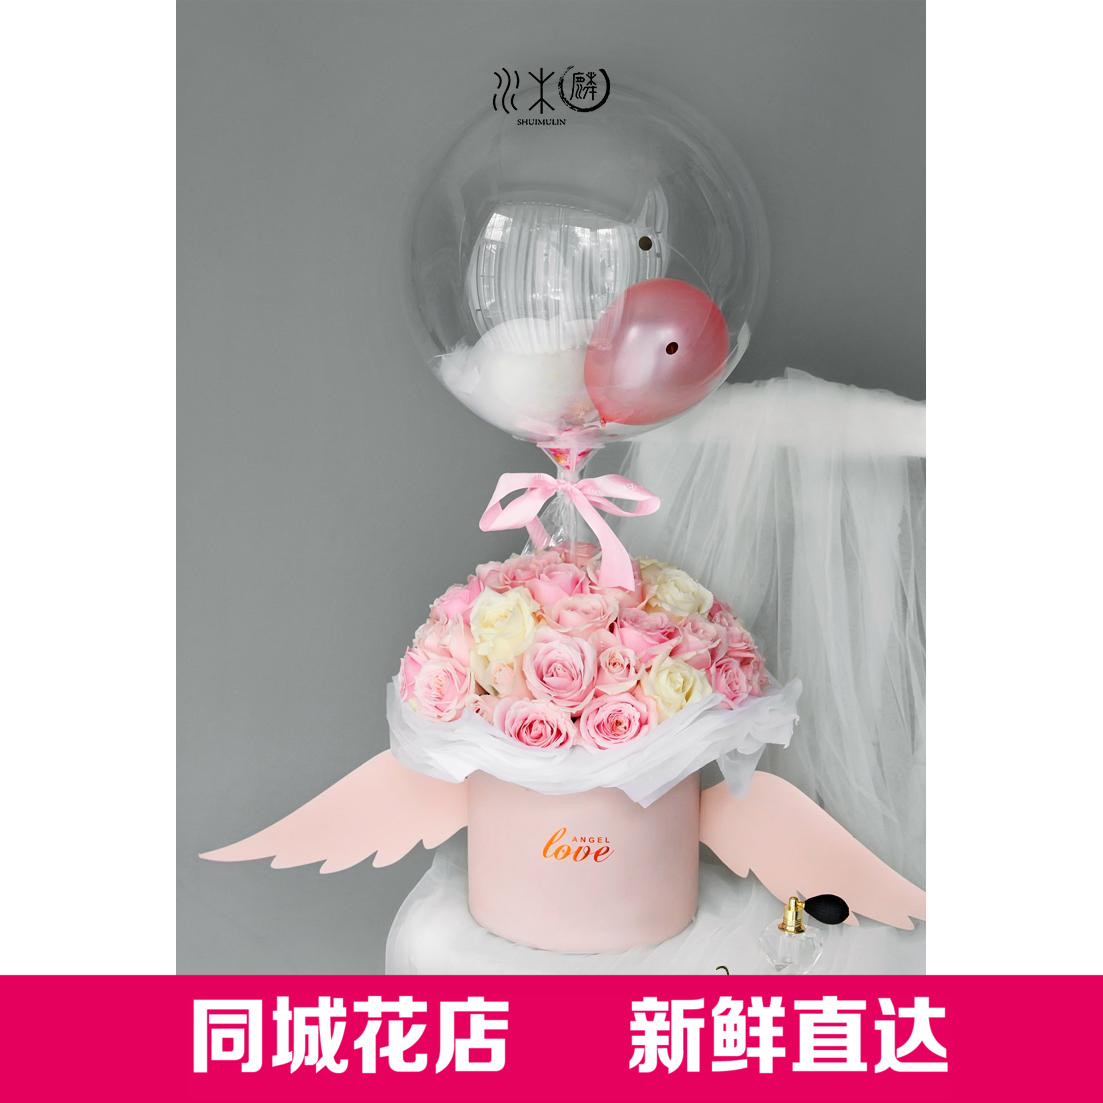 Flower balloon red rose confession Angel holding bucket Dalian flower express delivery to the same city